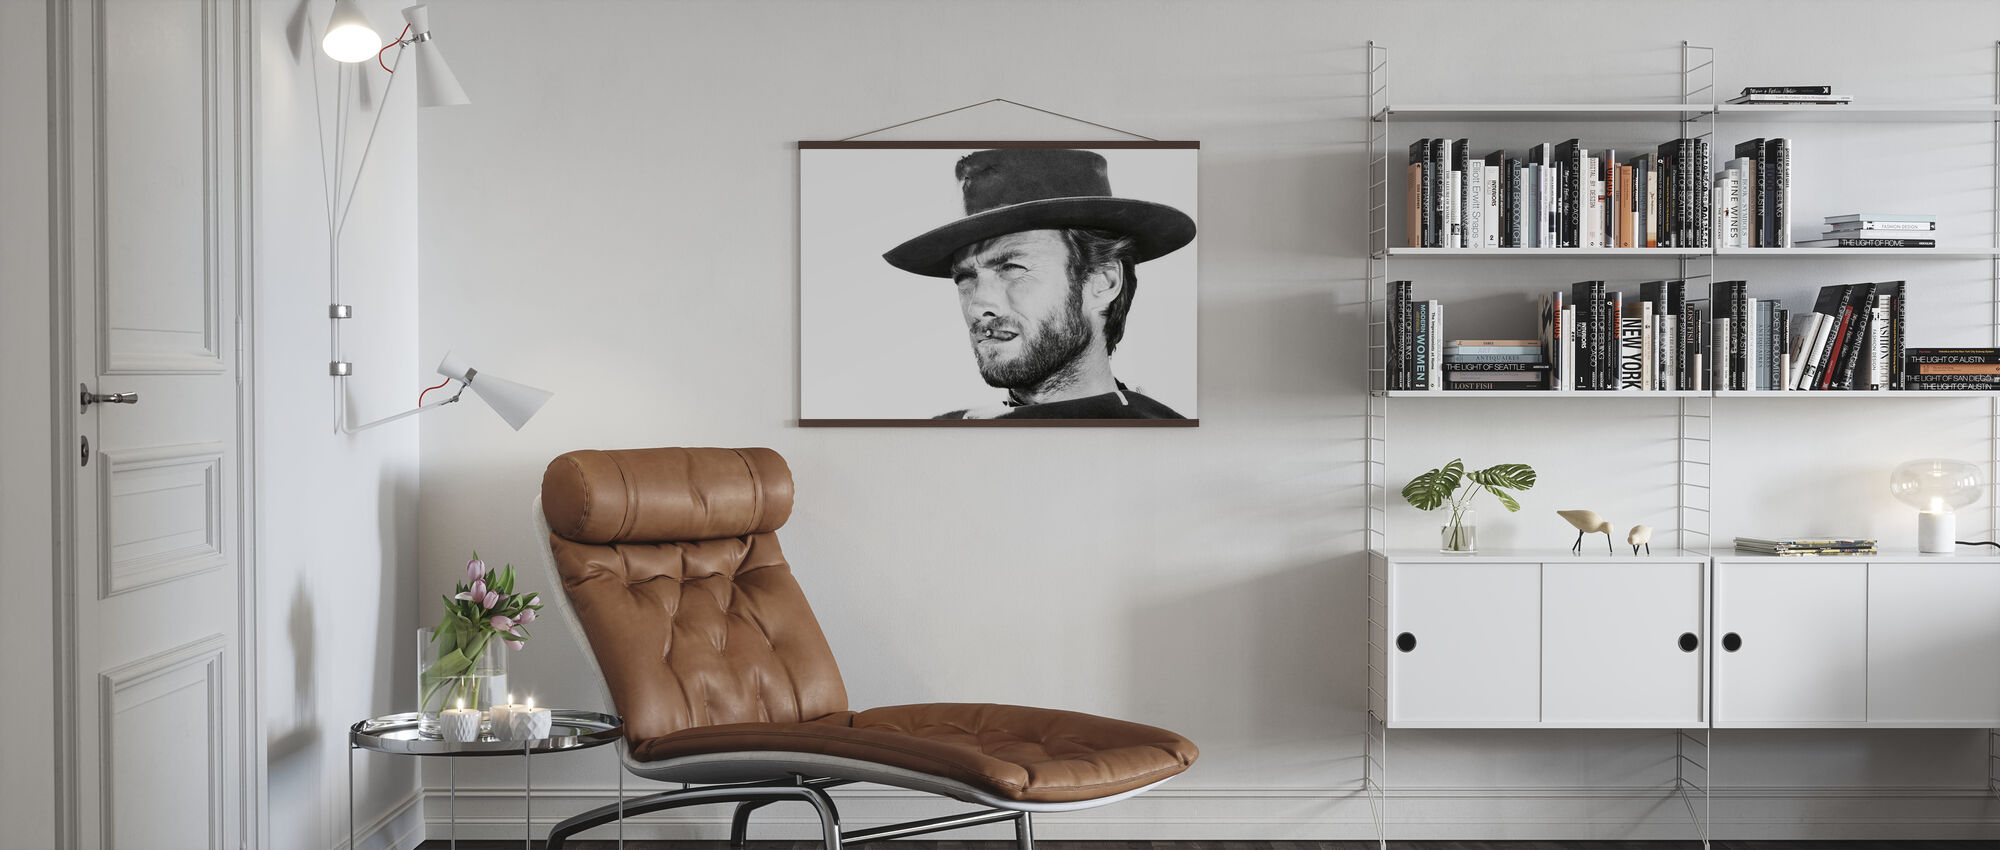 Clint Eastwood in Good the Bad and the Ugly - Poster - Living Room